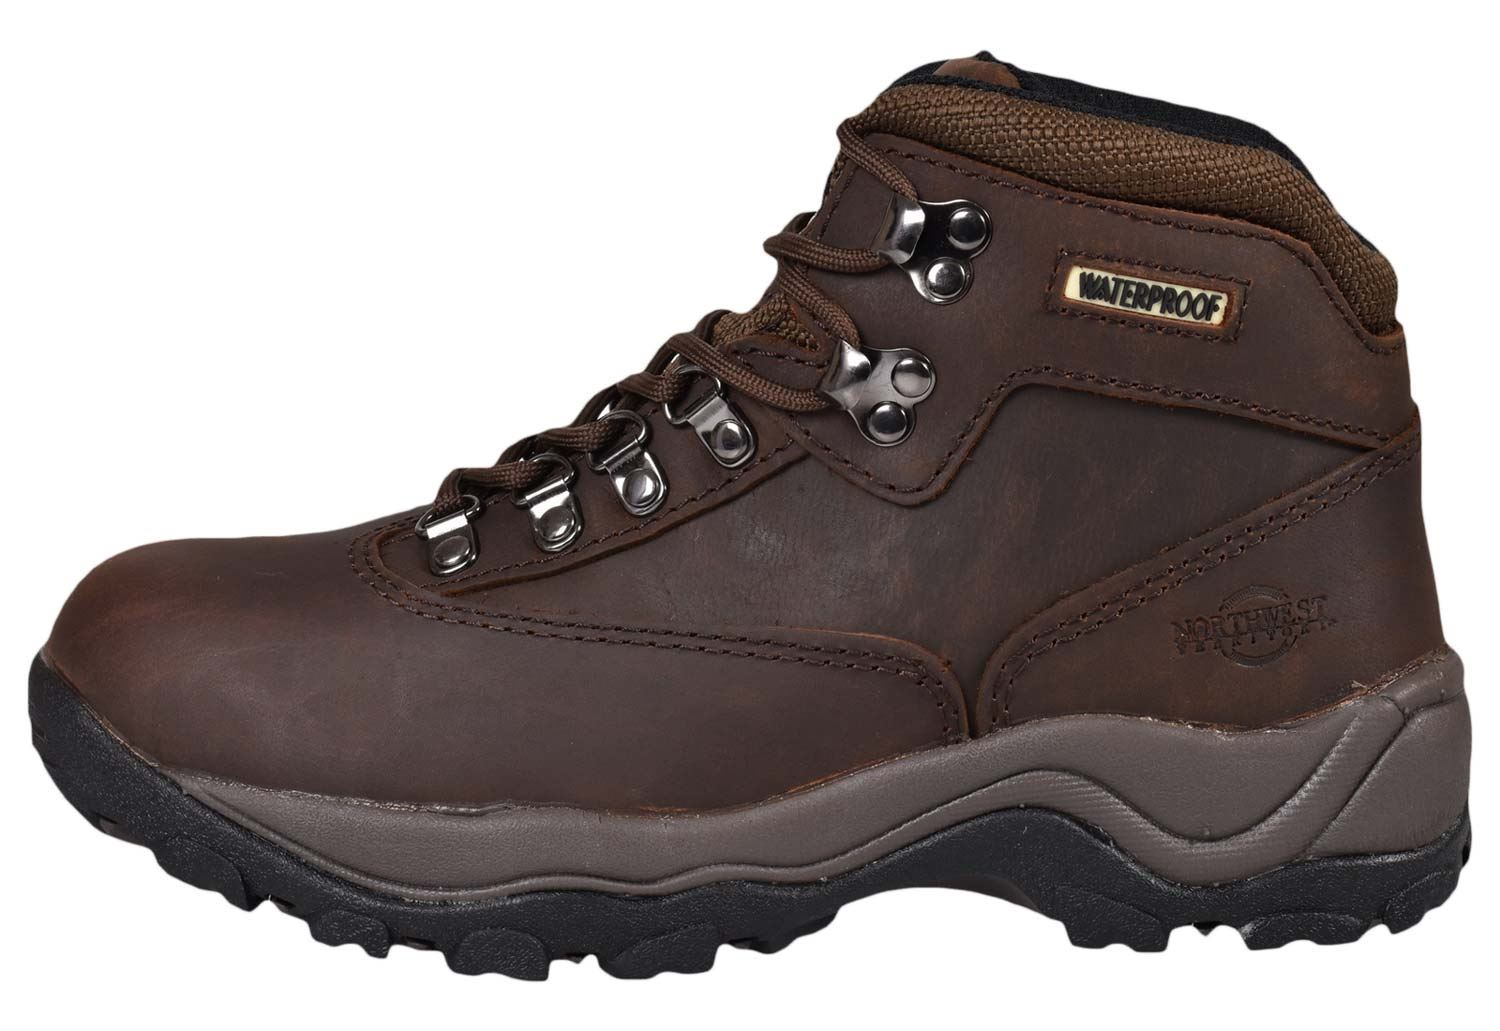 Northwest Territory Womens Leather Ankle Boots Hiking Camping Waterproof Shoes